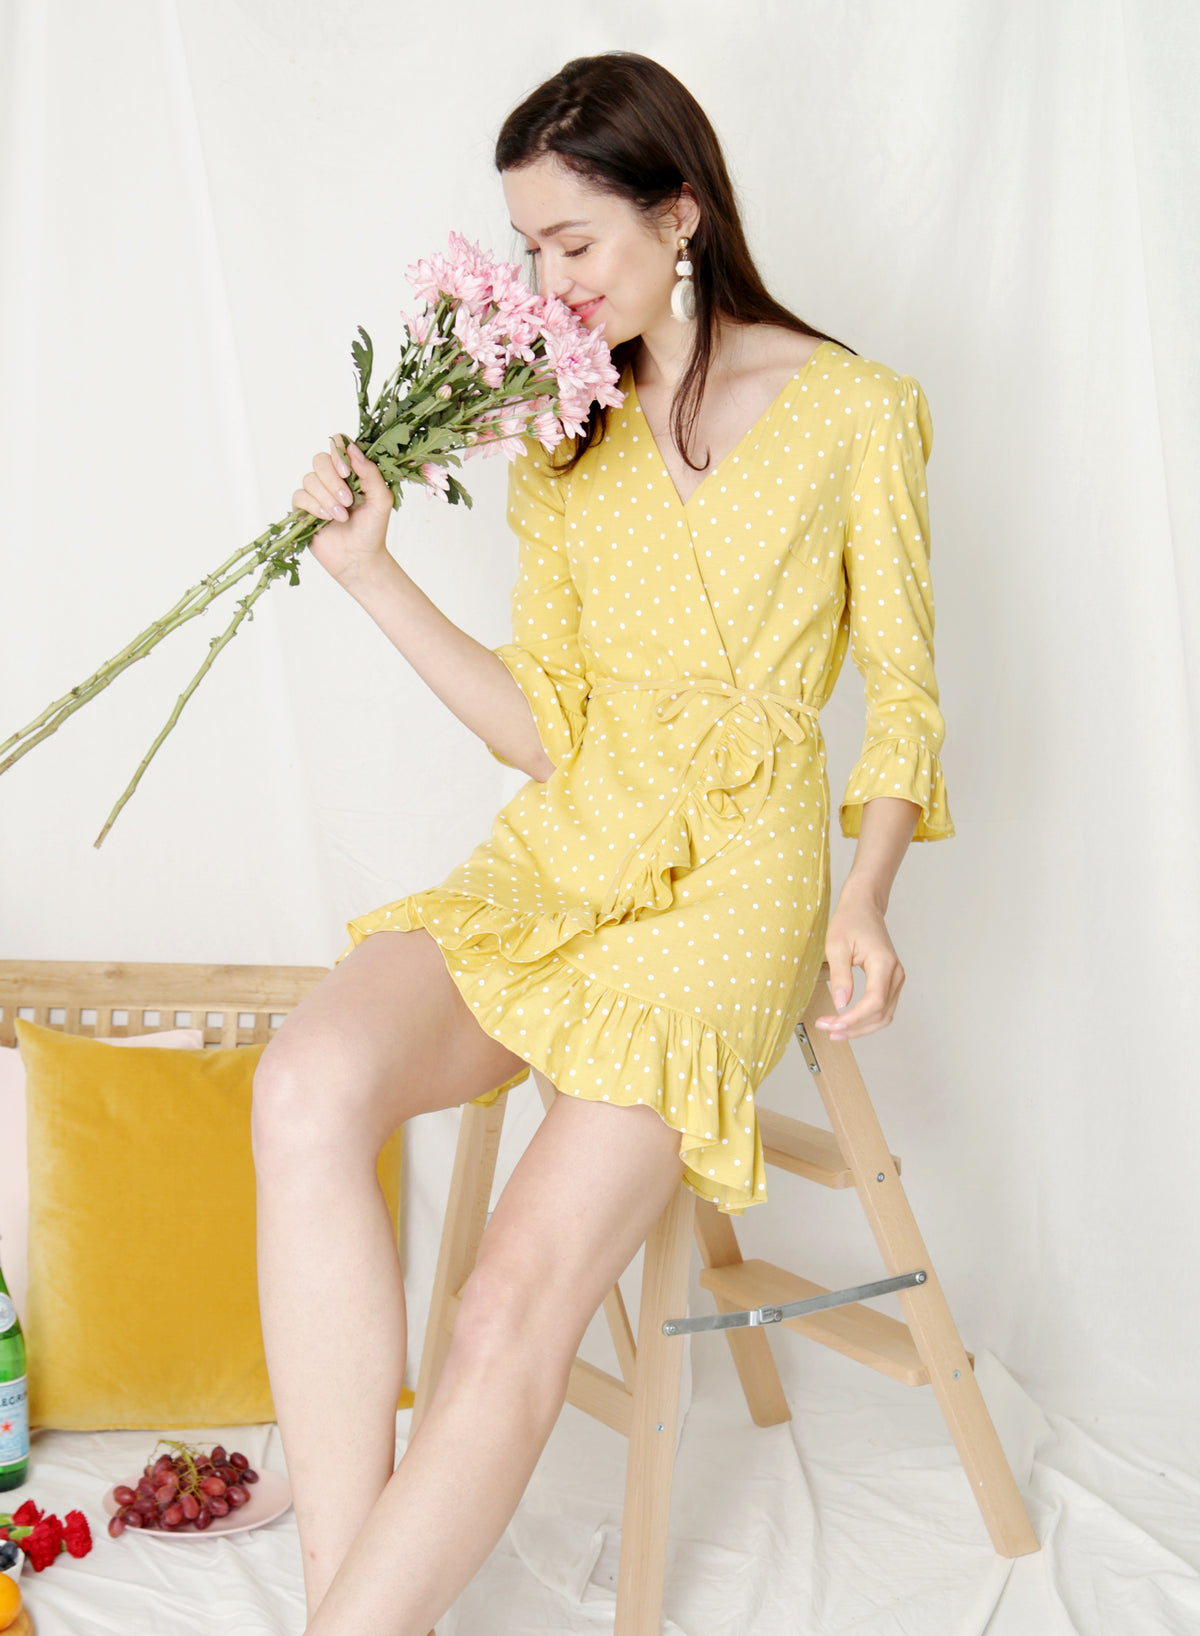 Treasure Ruffle Hem Wrap Dress (Yellow Polka) at $ 42.90 only sold at And Well Dressed Online Fashion Store Singapore